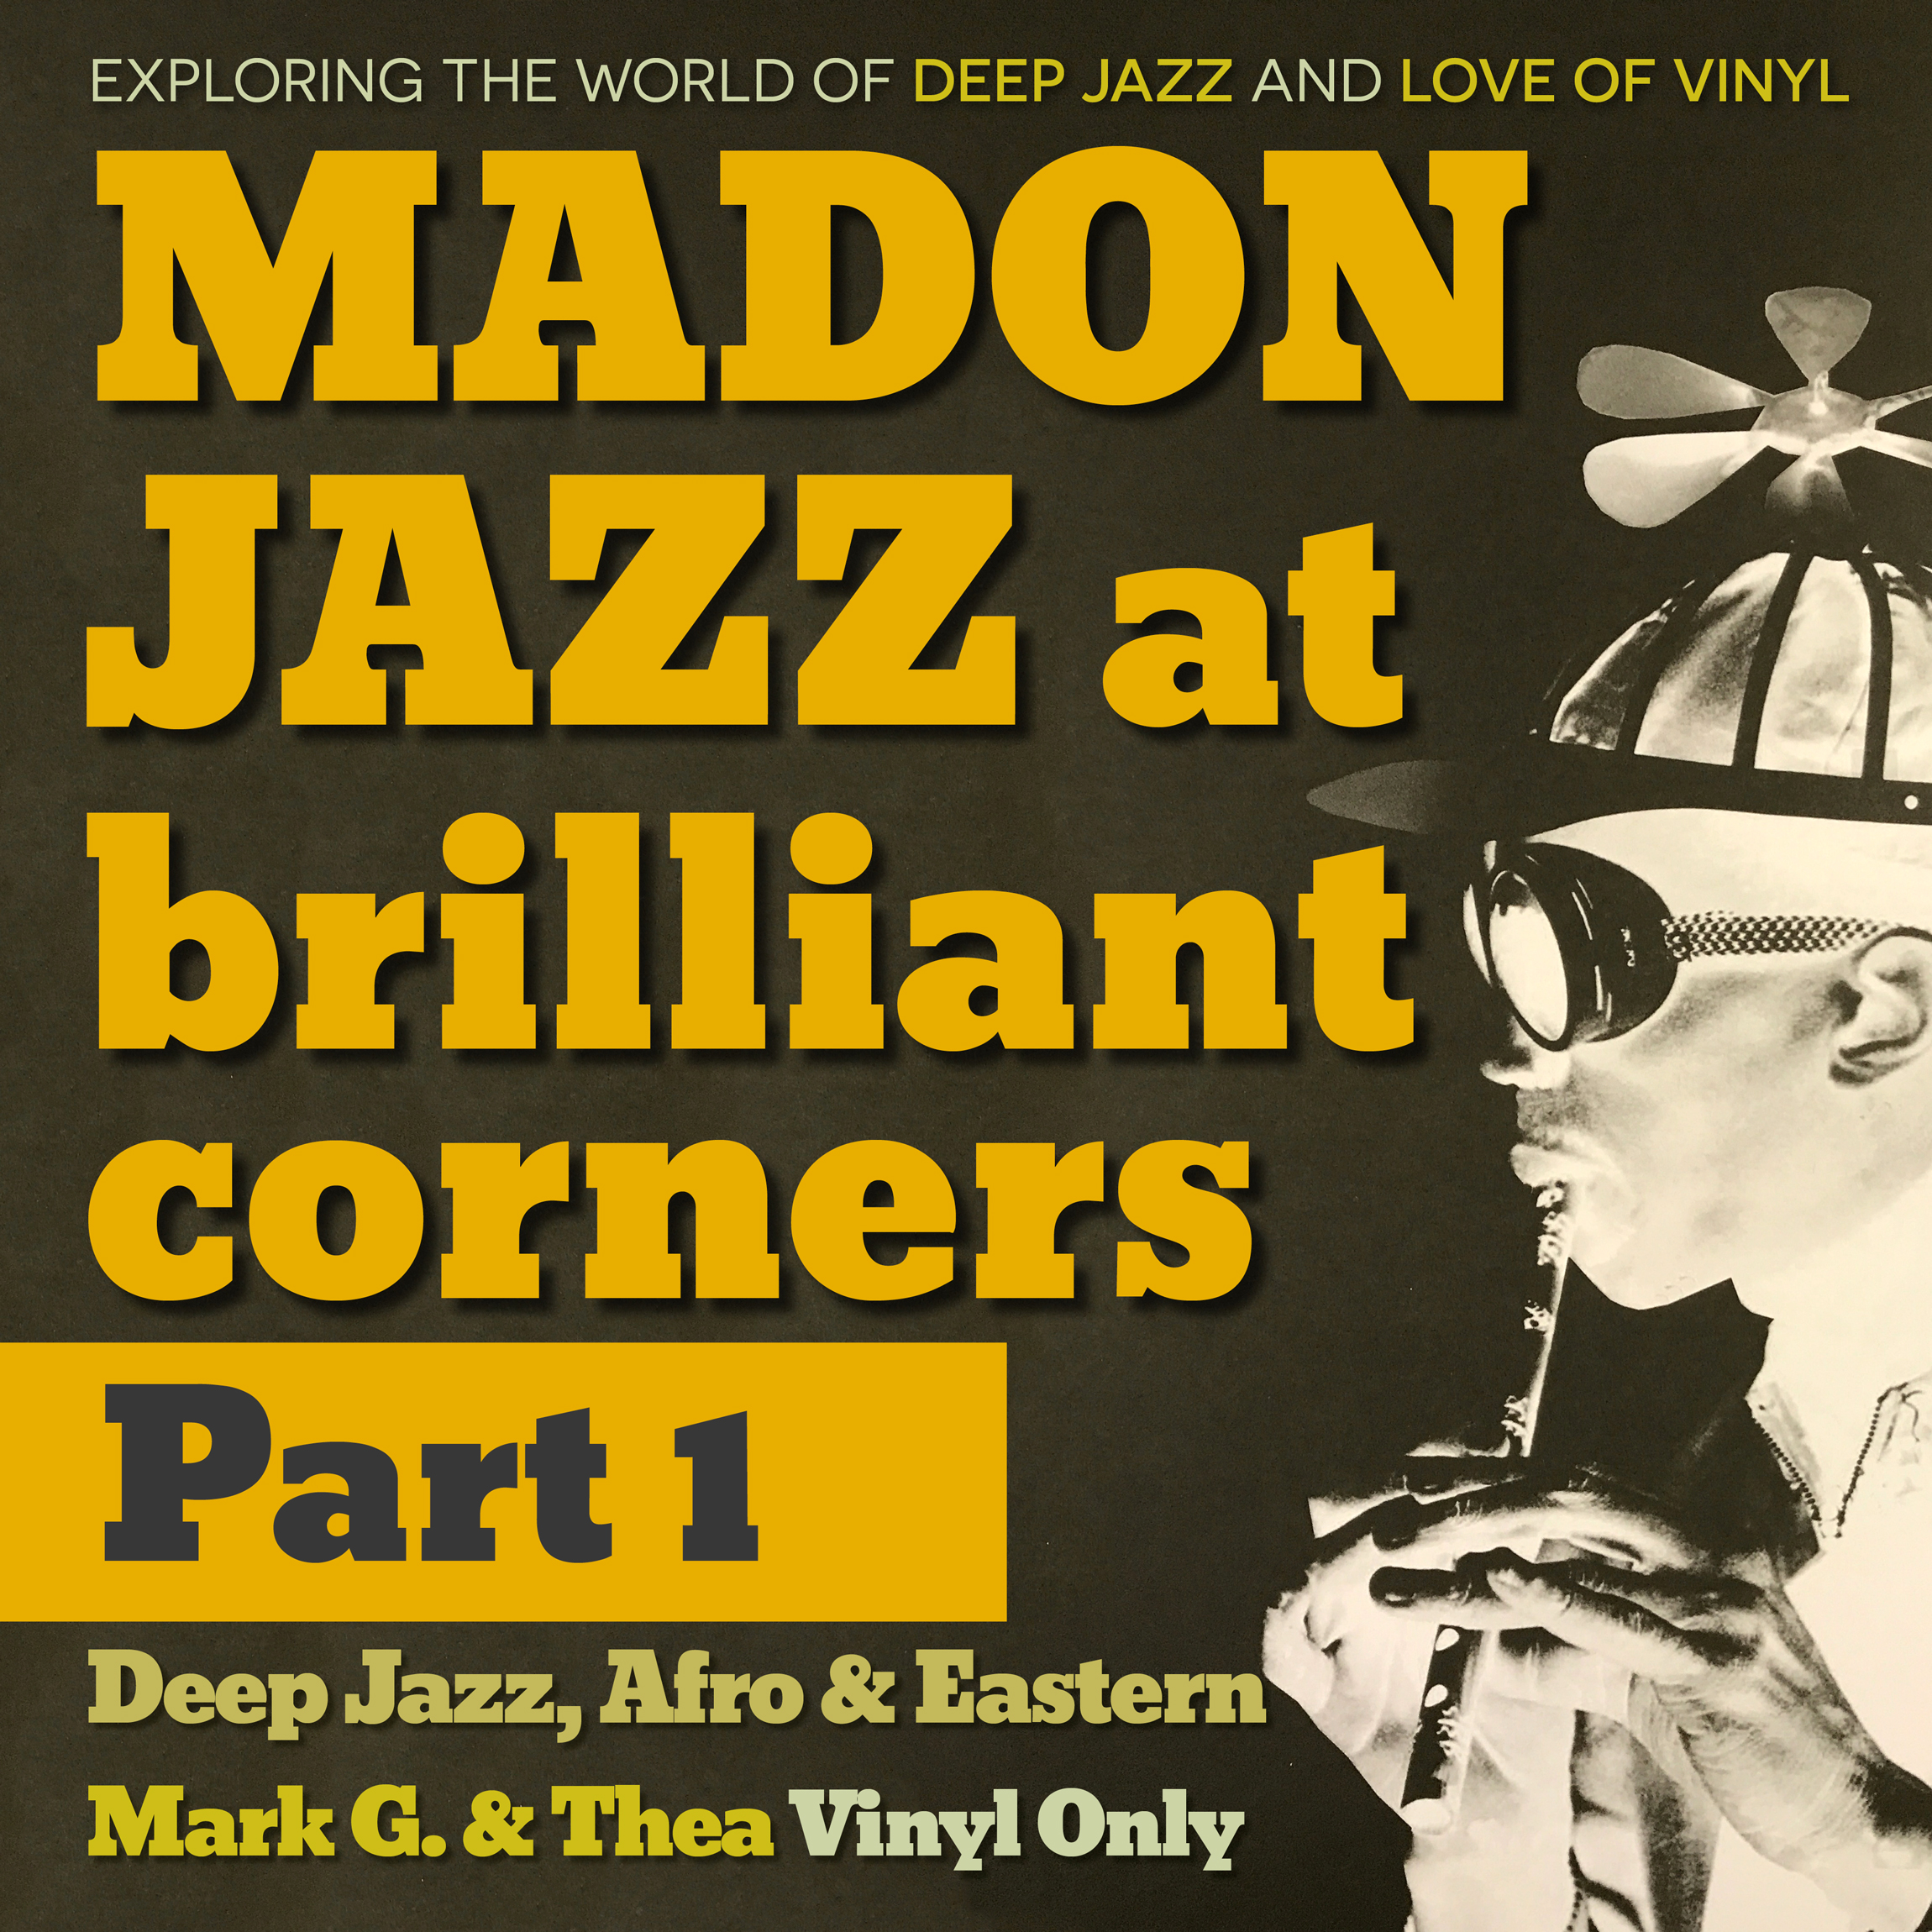 MADONJAZZ at Brilliant Corners, May 2017 – Pt 1